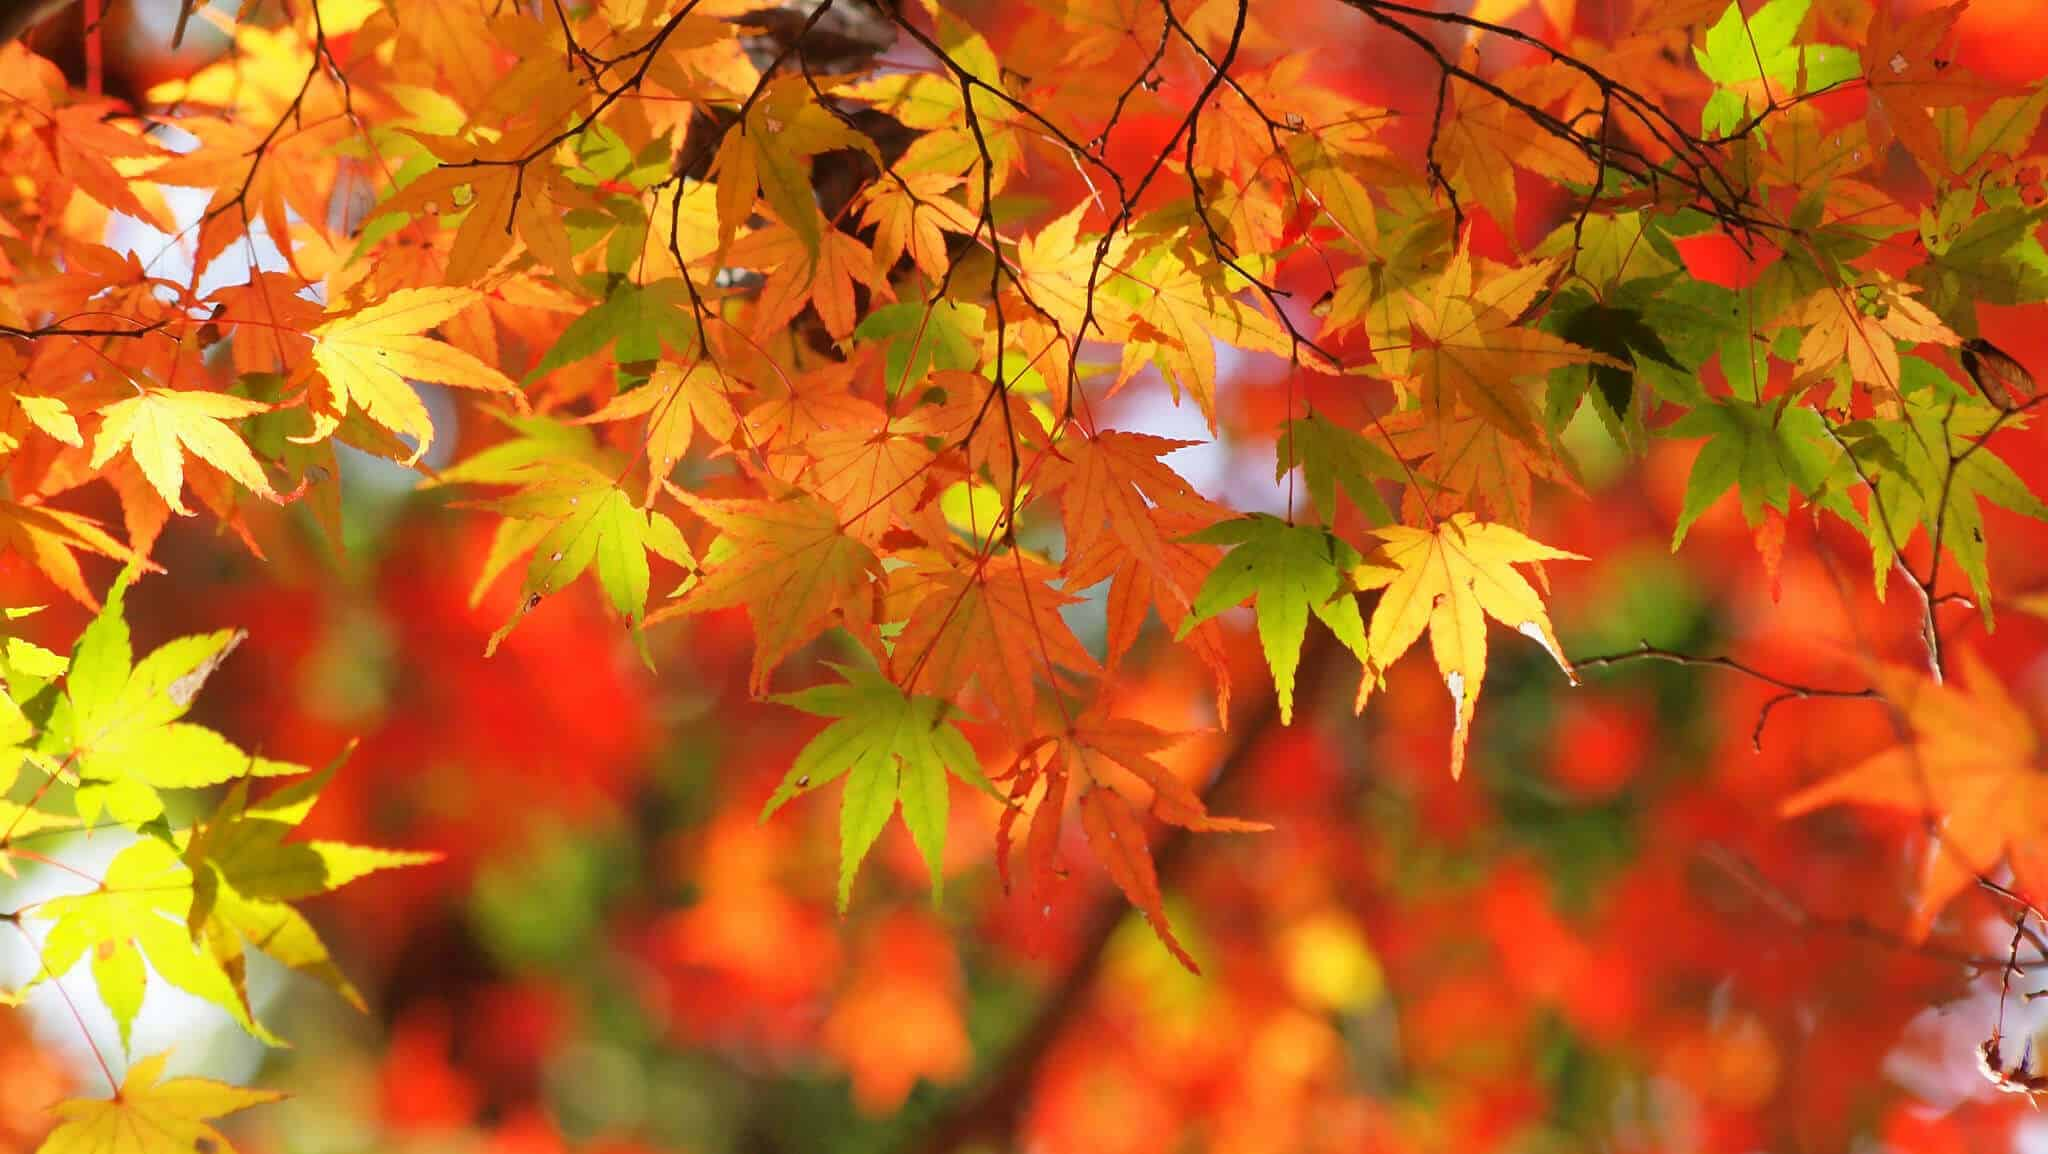 autumn photography - close up of colorful leaves